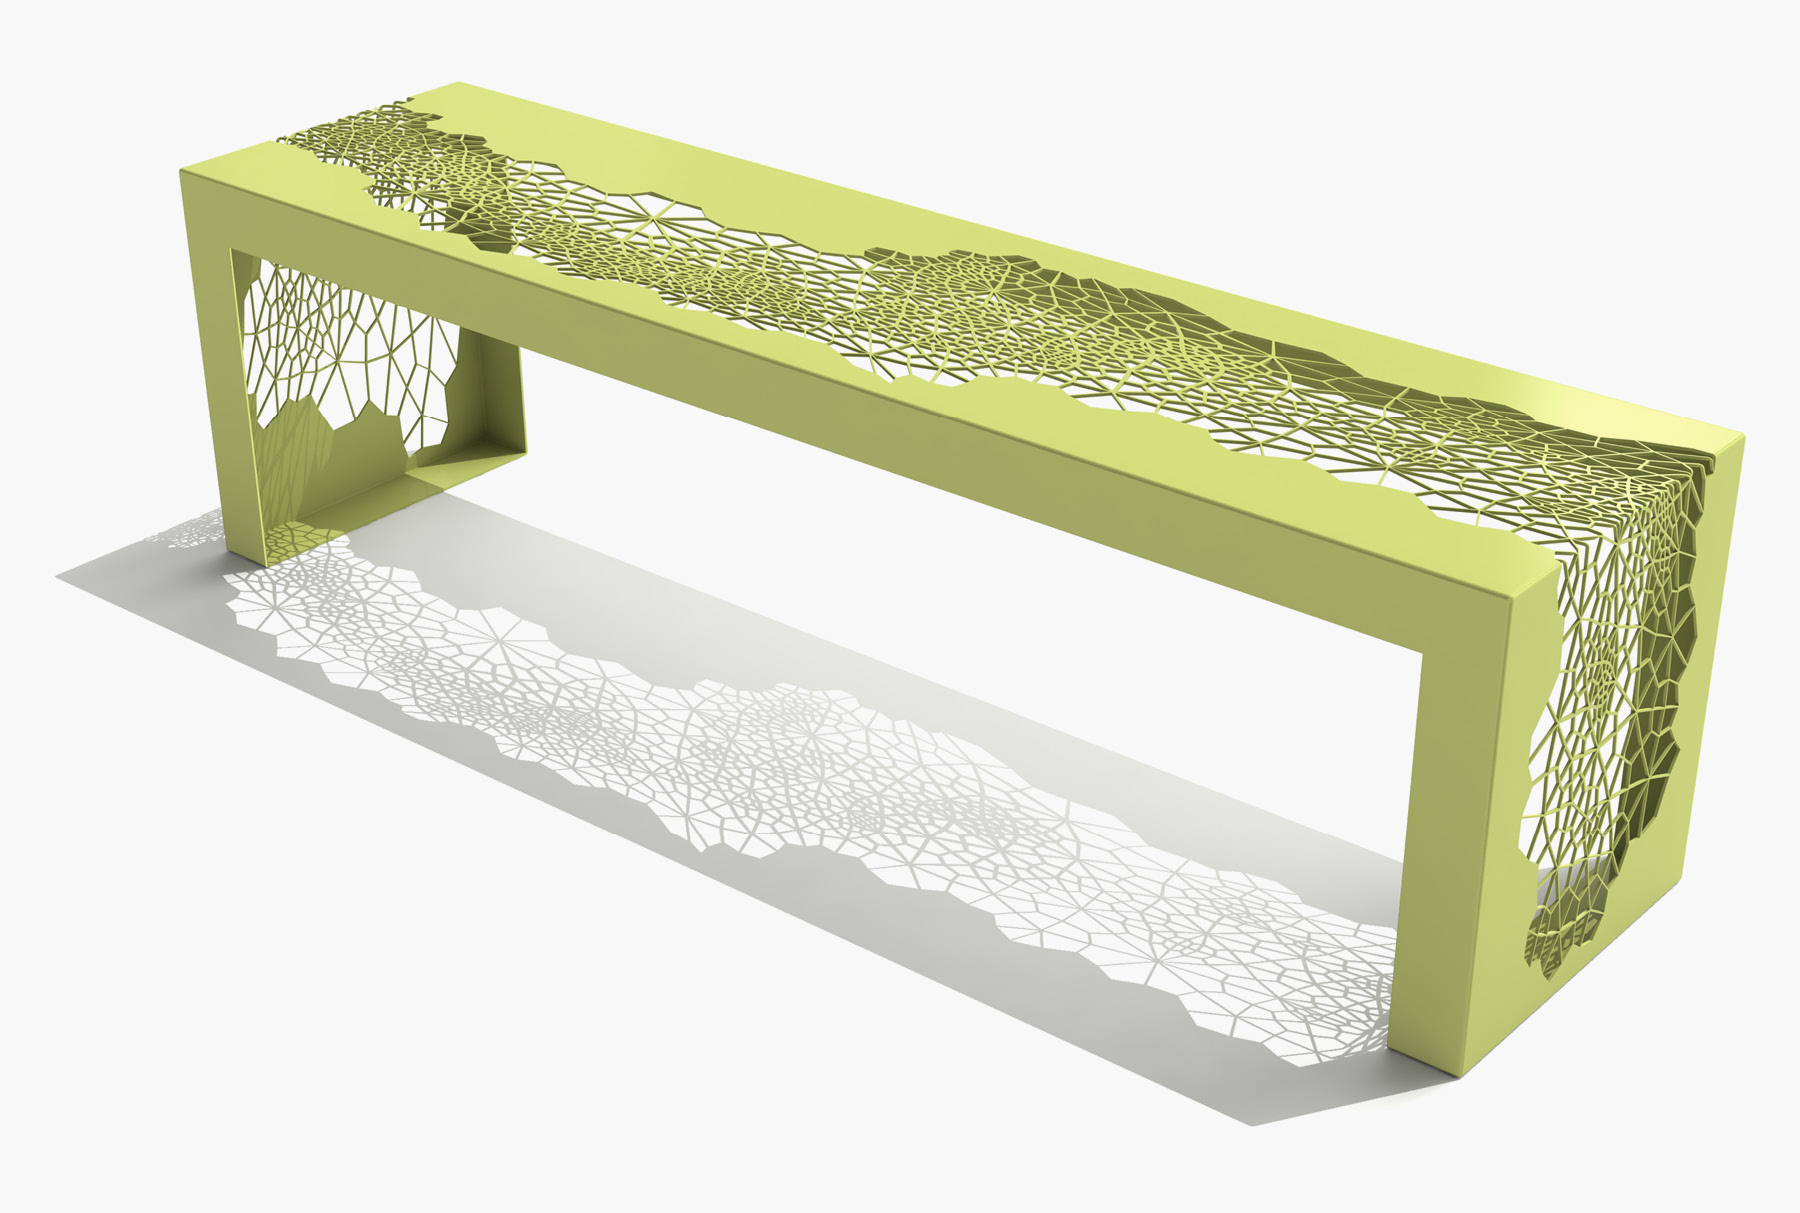 Arktura Hive Bench 70 in Lush Green